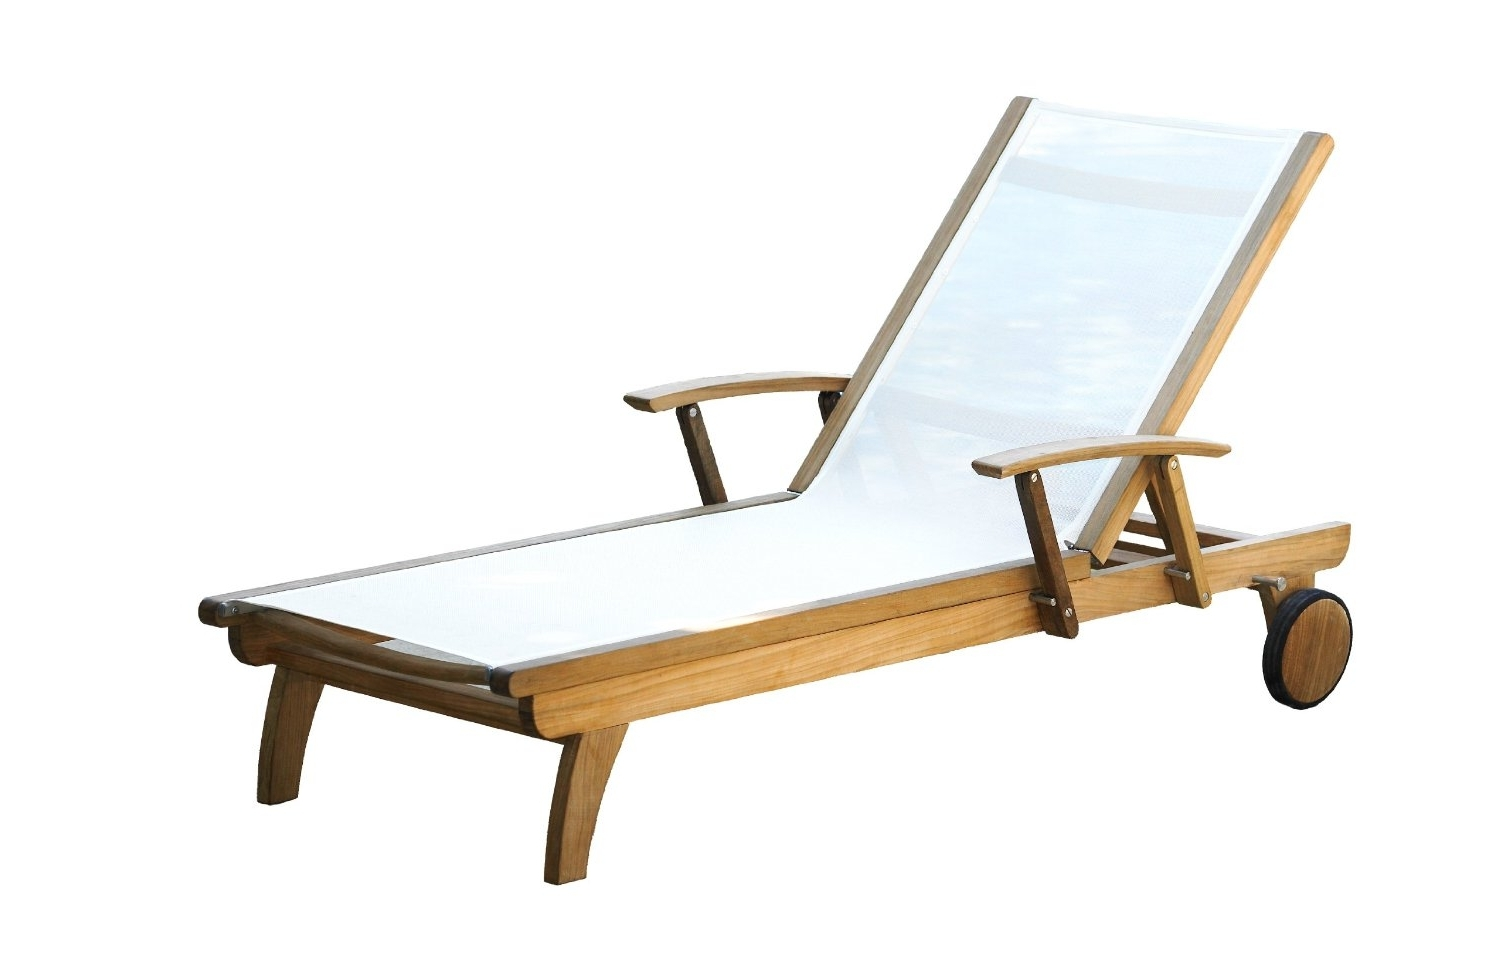 Teak Chaise Lounges Intended For Famous Teak Chaise Lounge Chair – Teak Patio Furniture World (View 2 of 15)